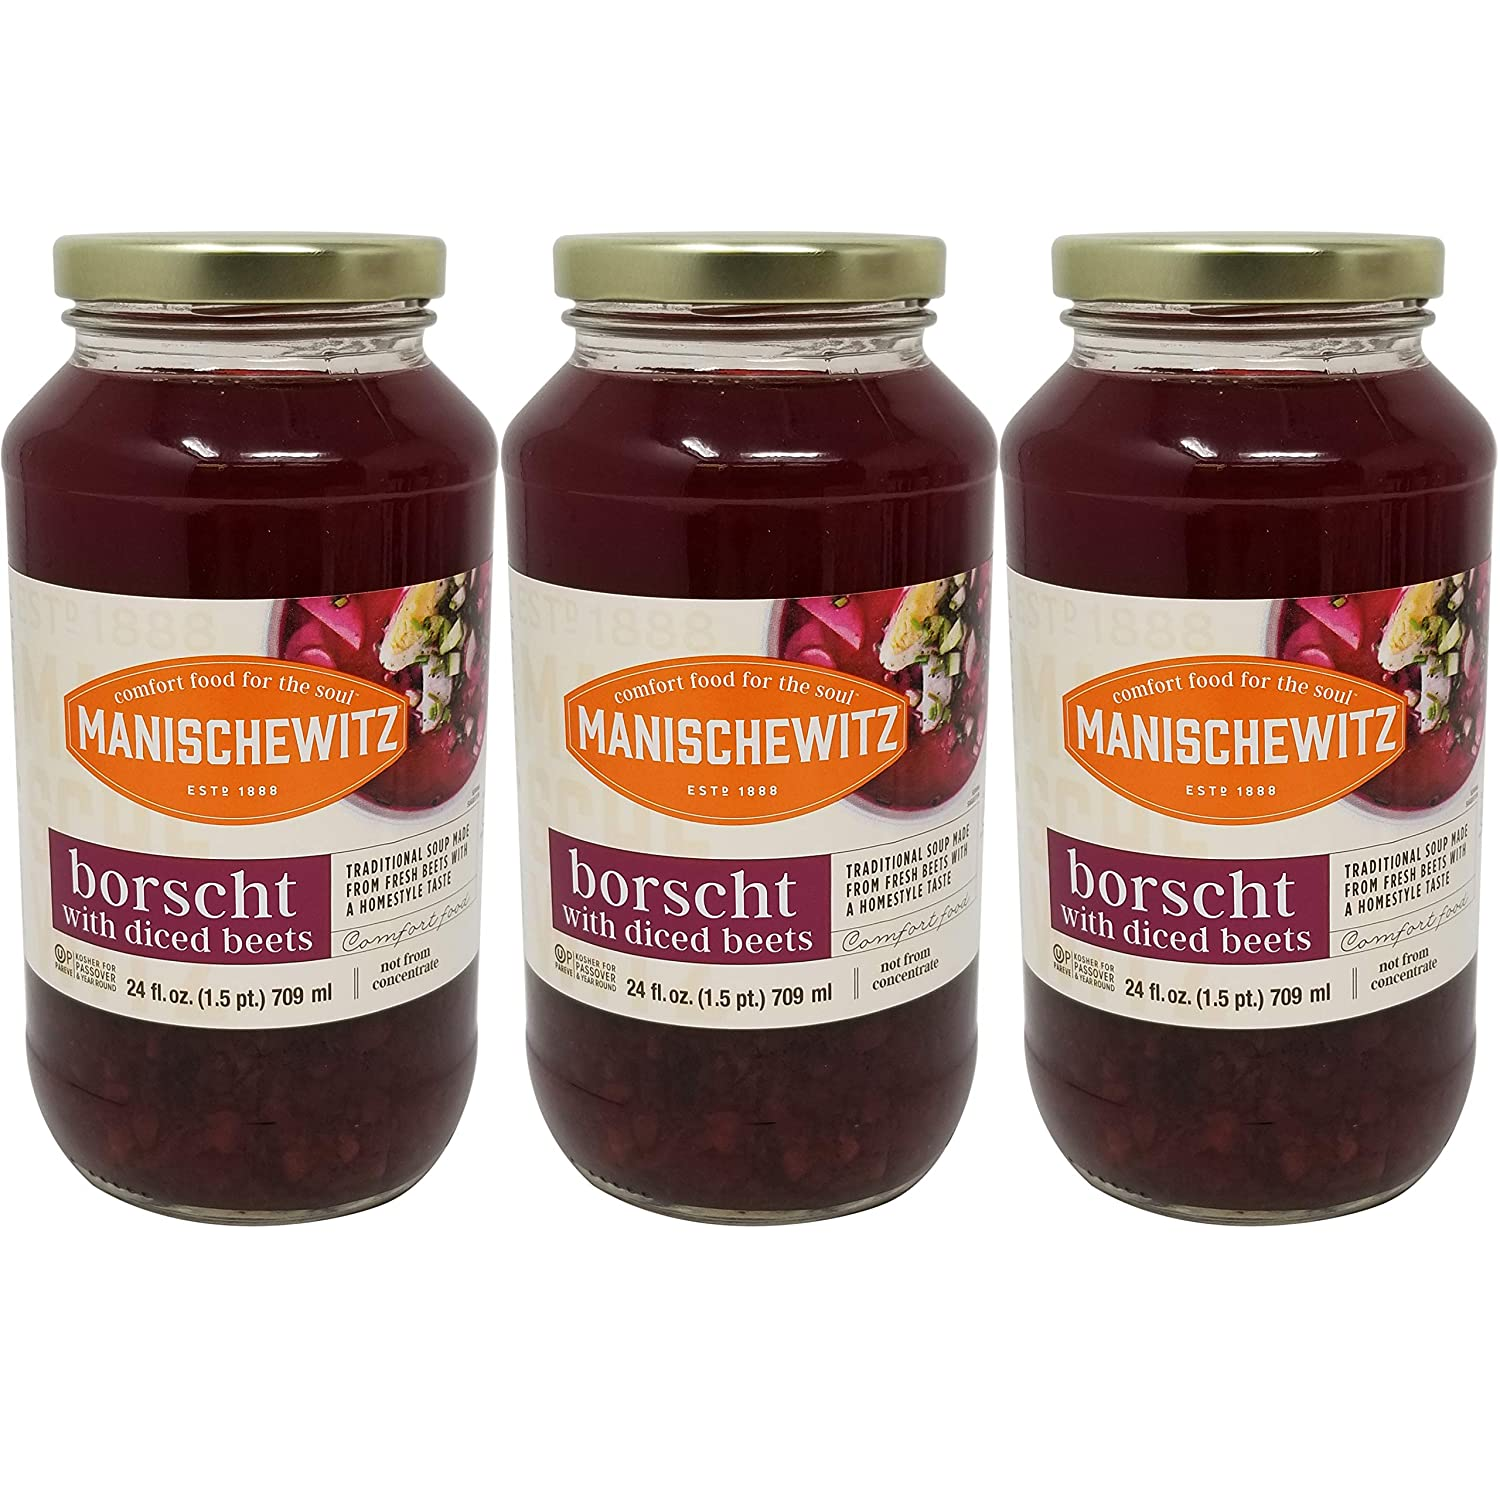 Manischewitz Borscht With Shredded Beets, Kosher For Passover, 24 Ounce Jar (Pack of 3, Total of 72 Oz)